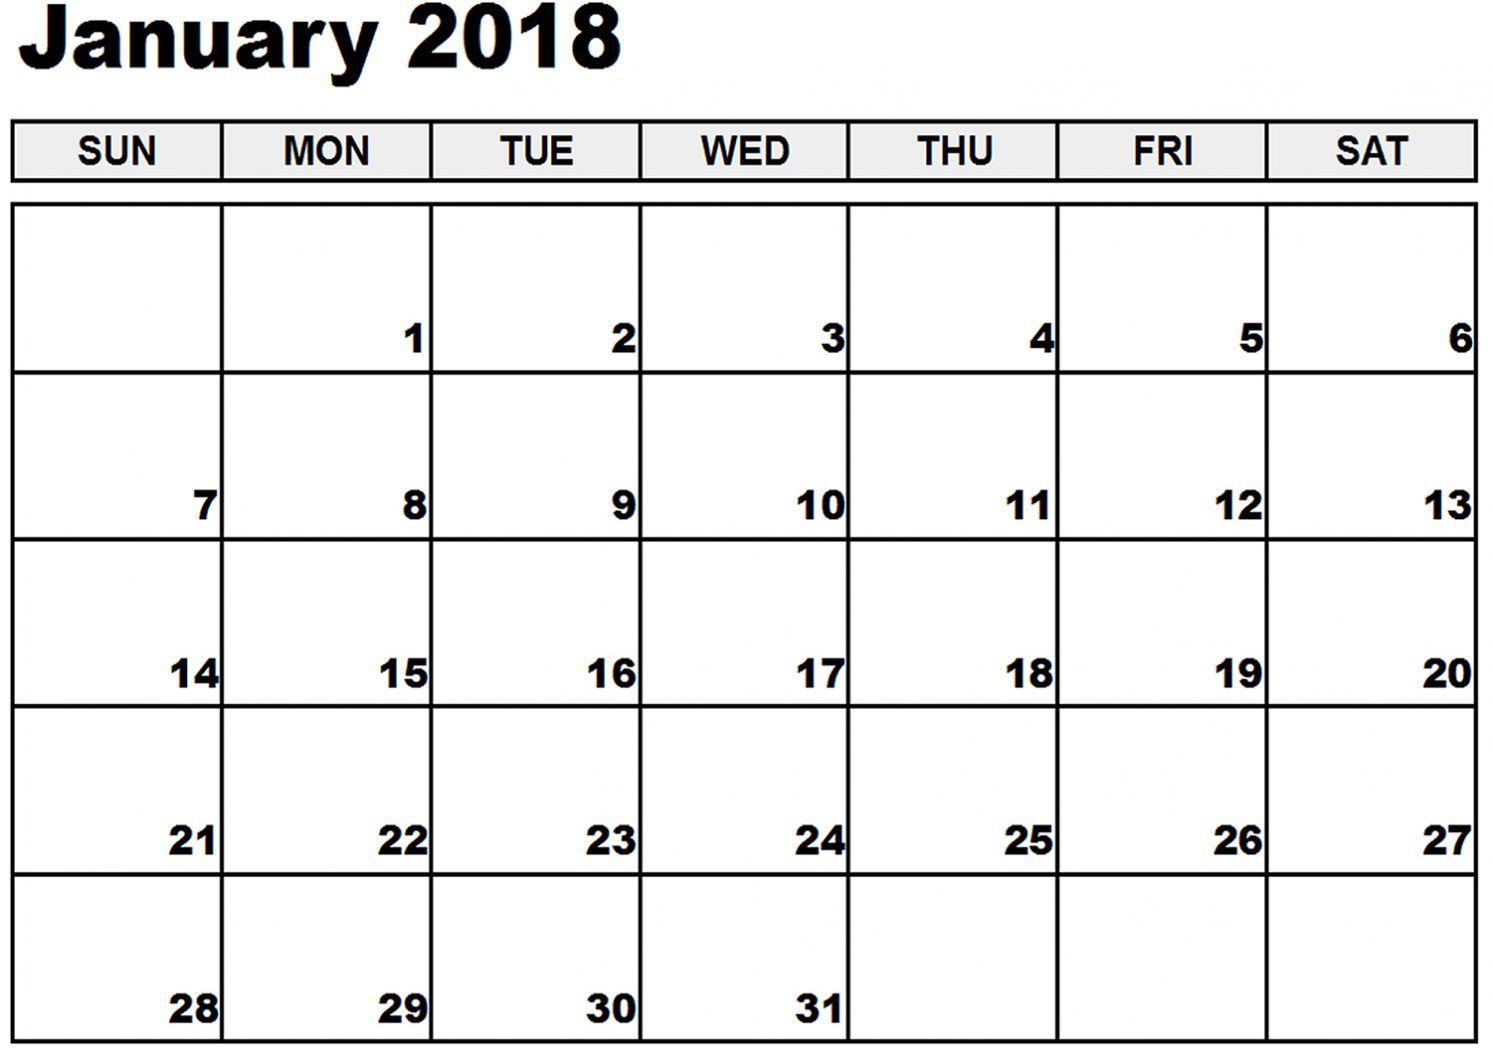 January Template 2018 Calendar – Latest HD Pictures, Images and ...